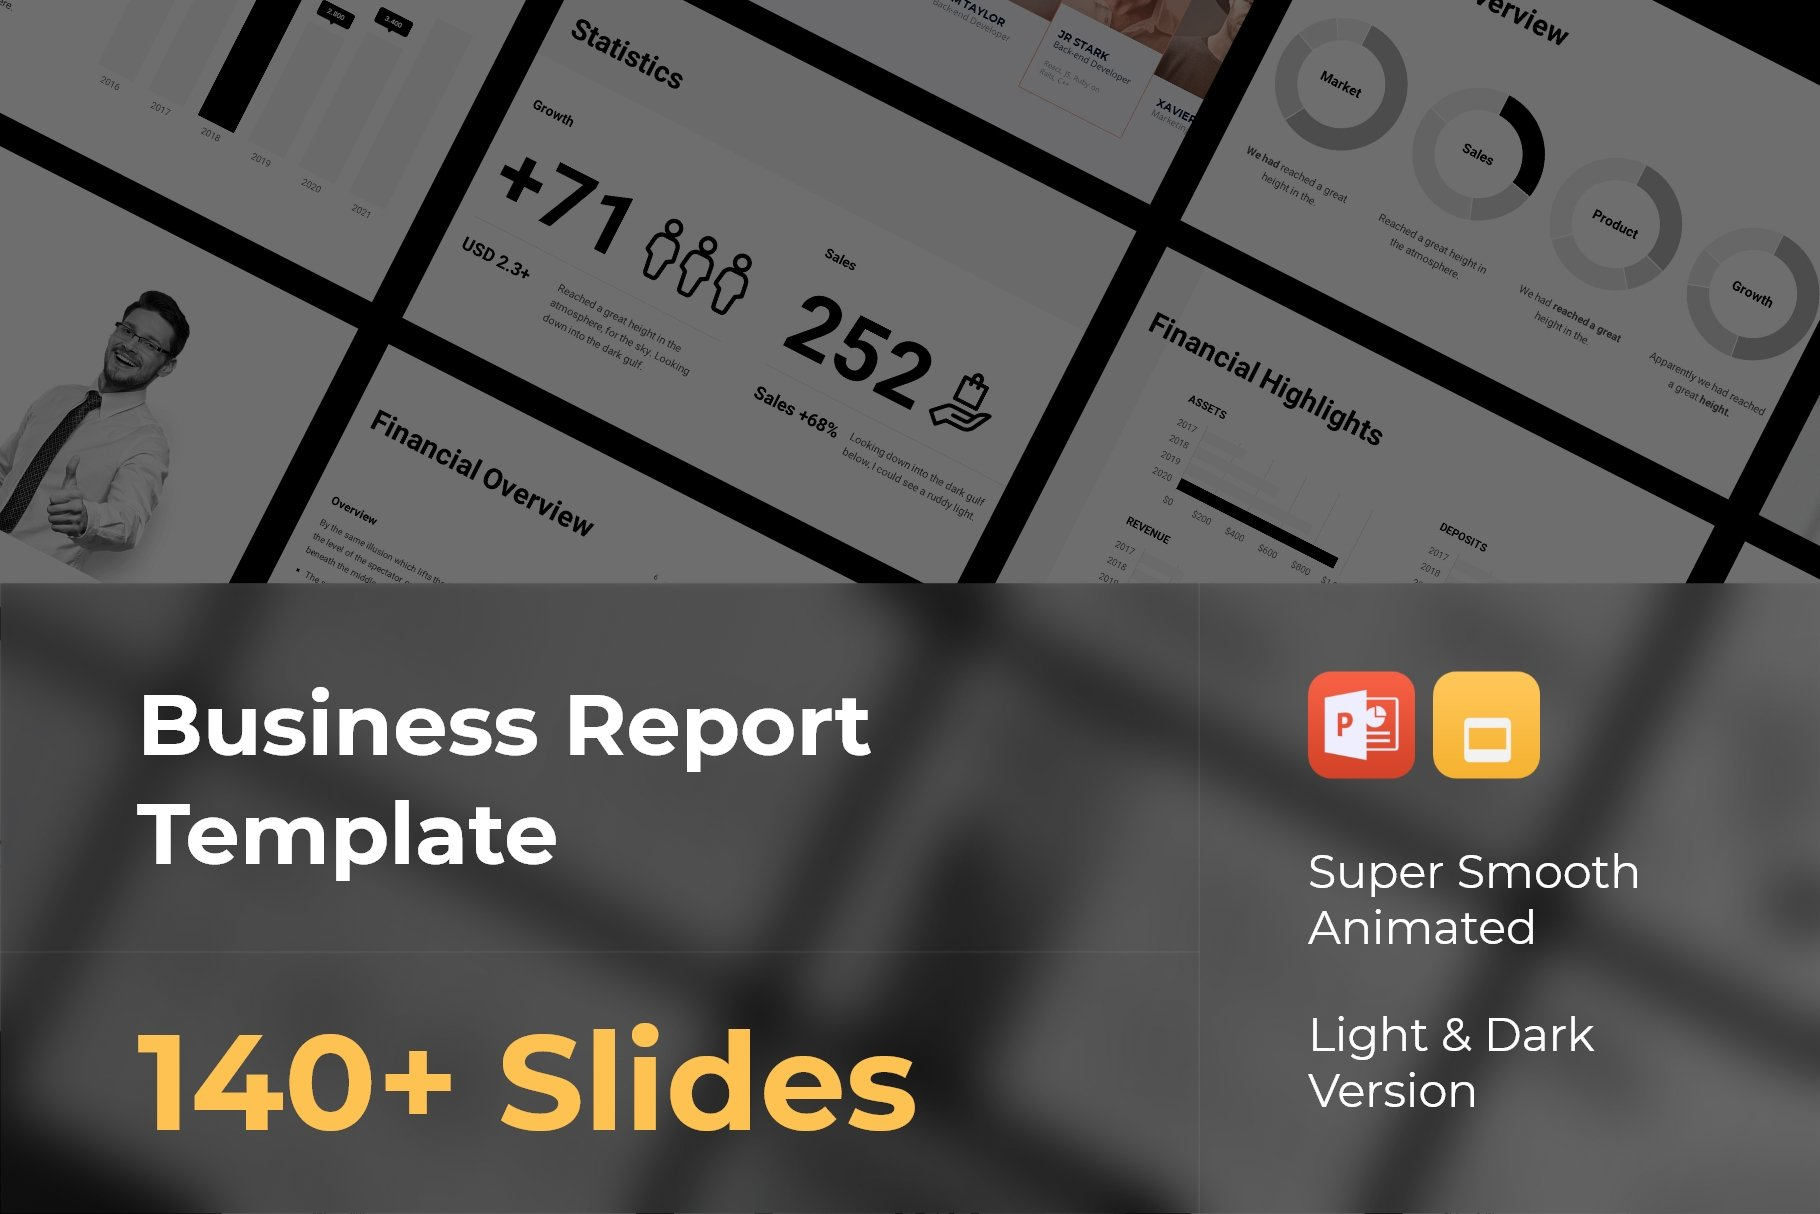 Business report template.